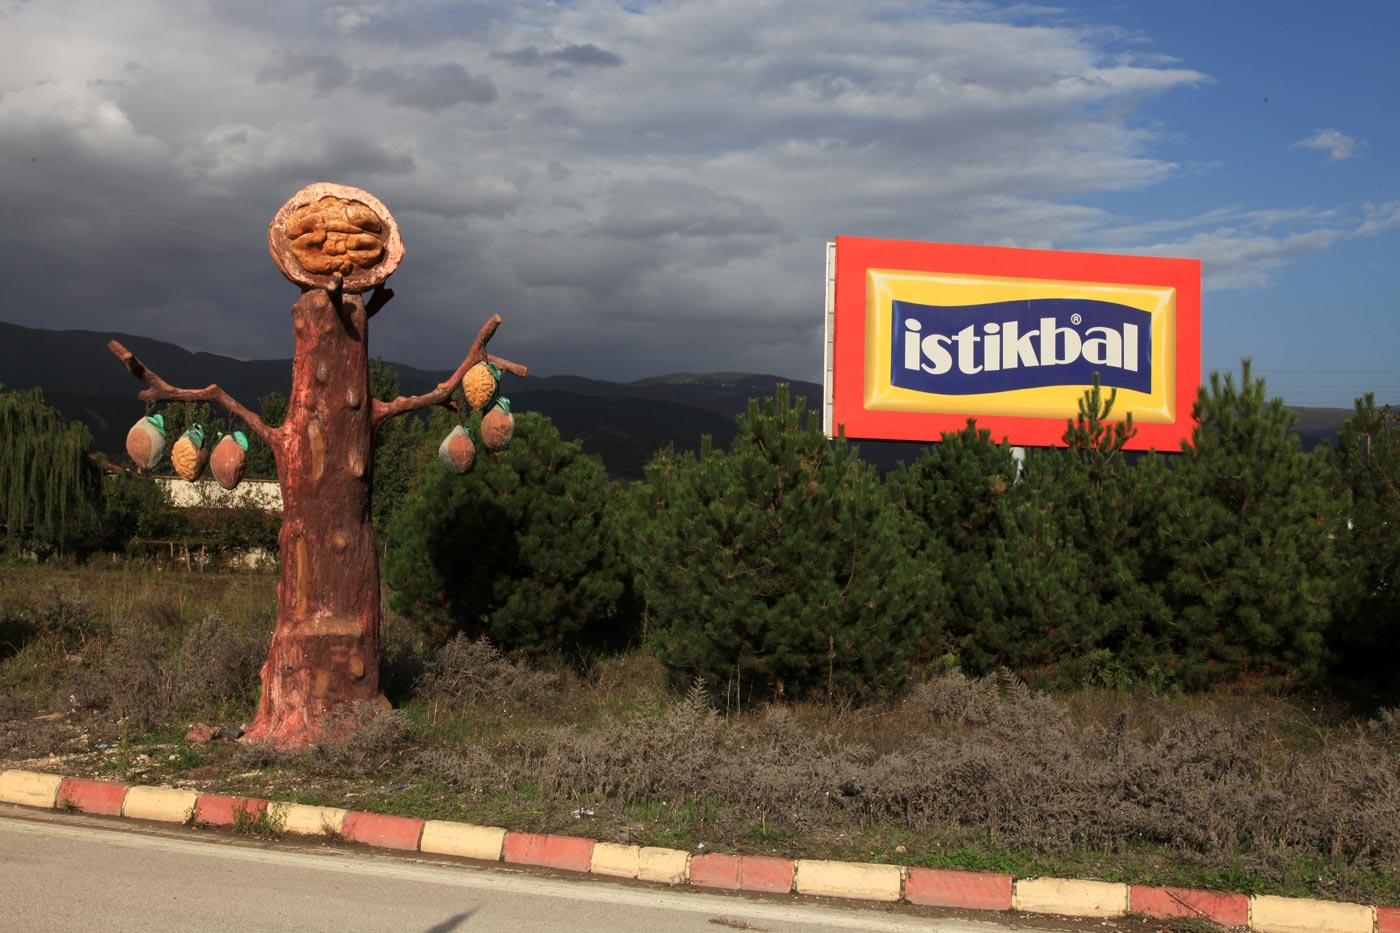 Niksar, famous for its walnuts, Turkey